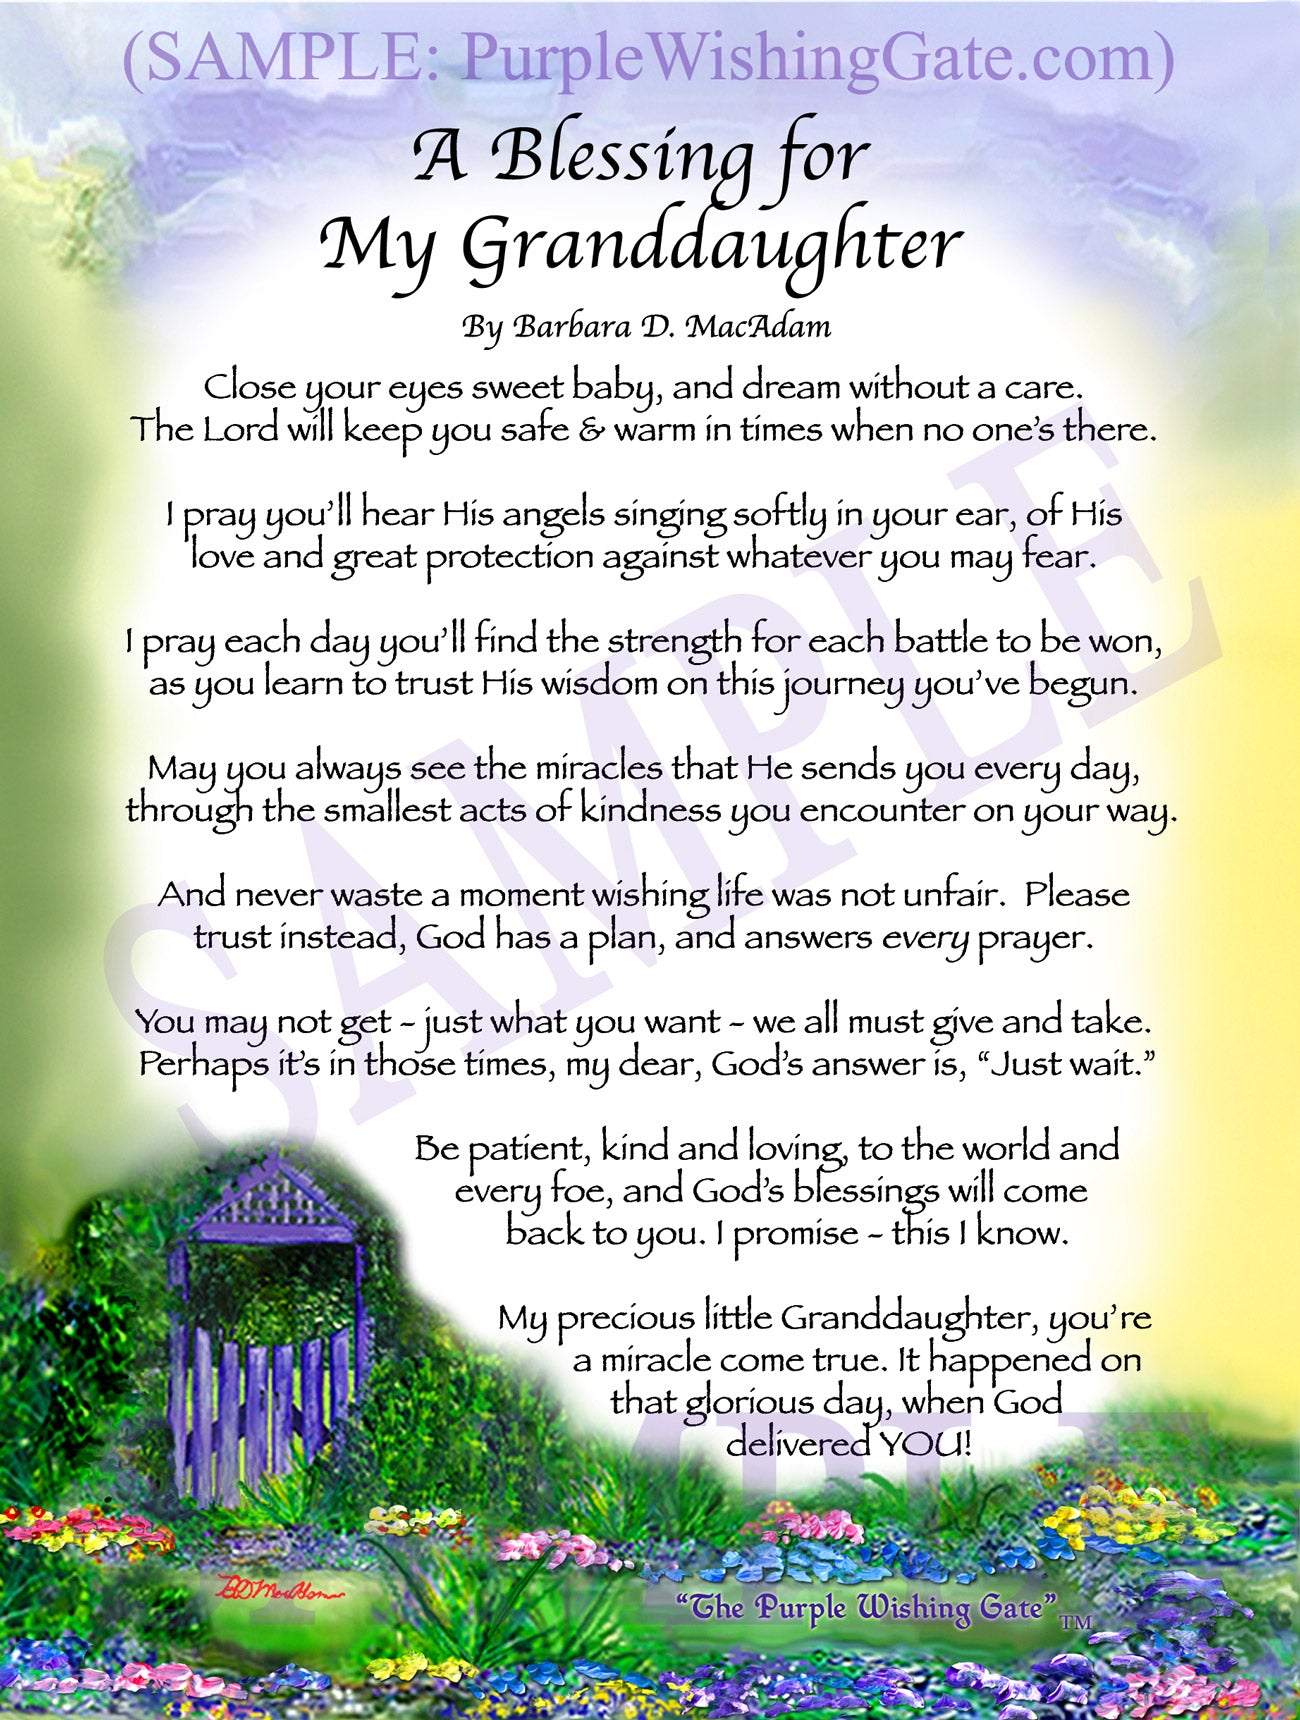 A Blessing for My Granddaughter (baby) - Baby Gift - PurpleWishingGate.com